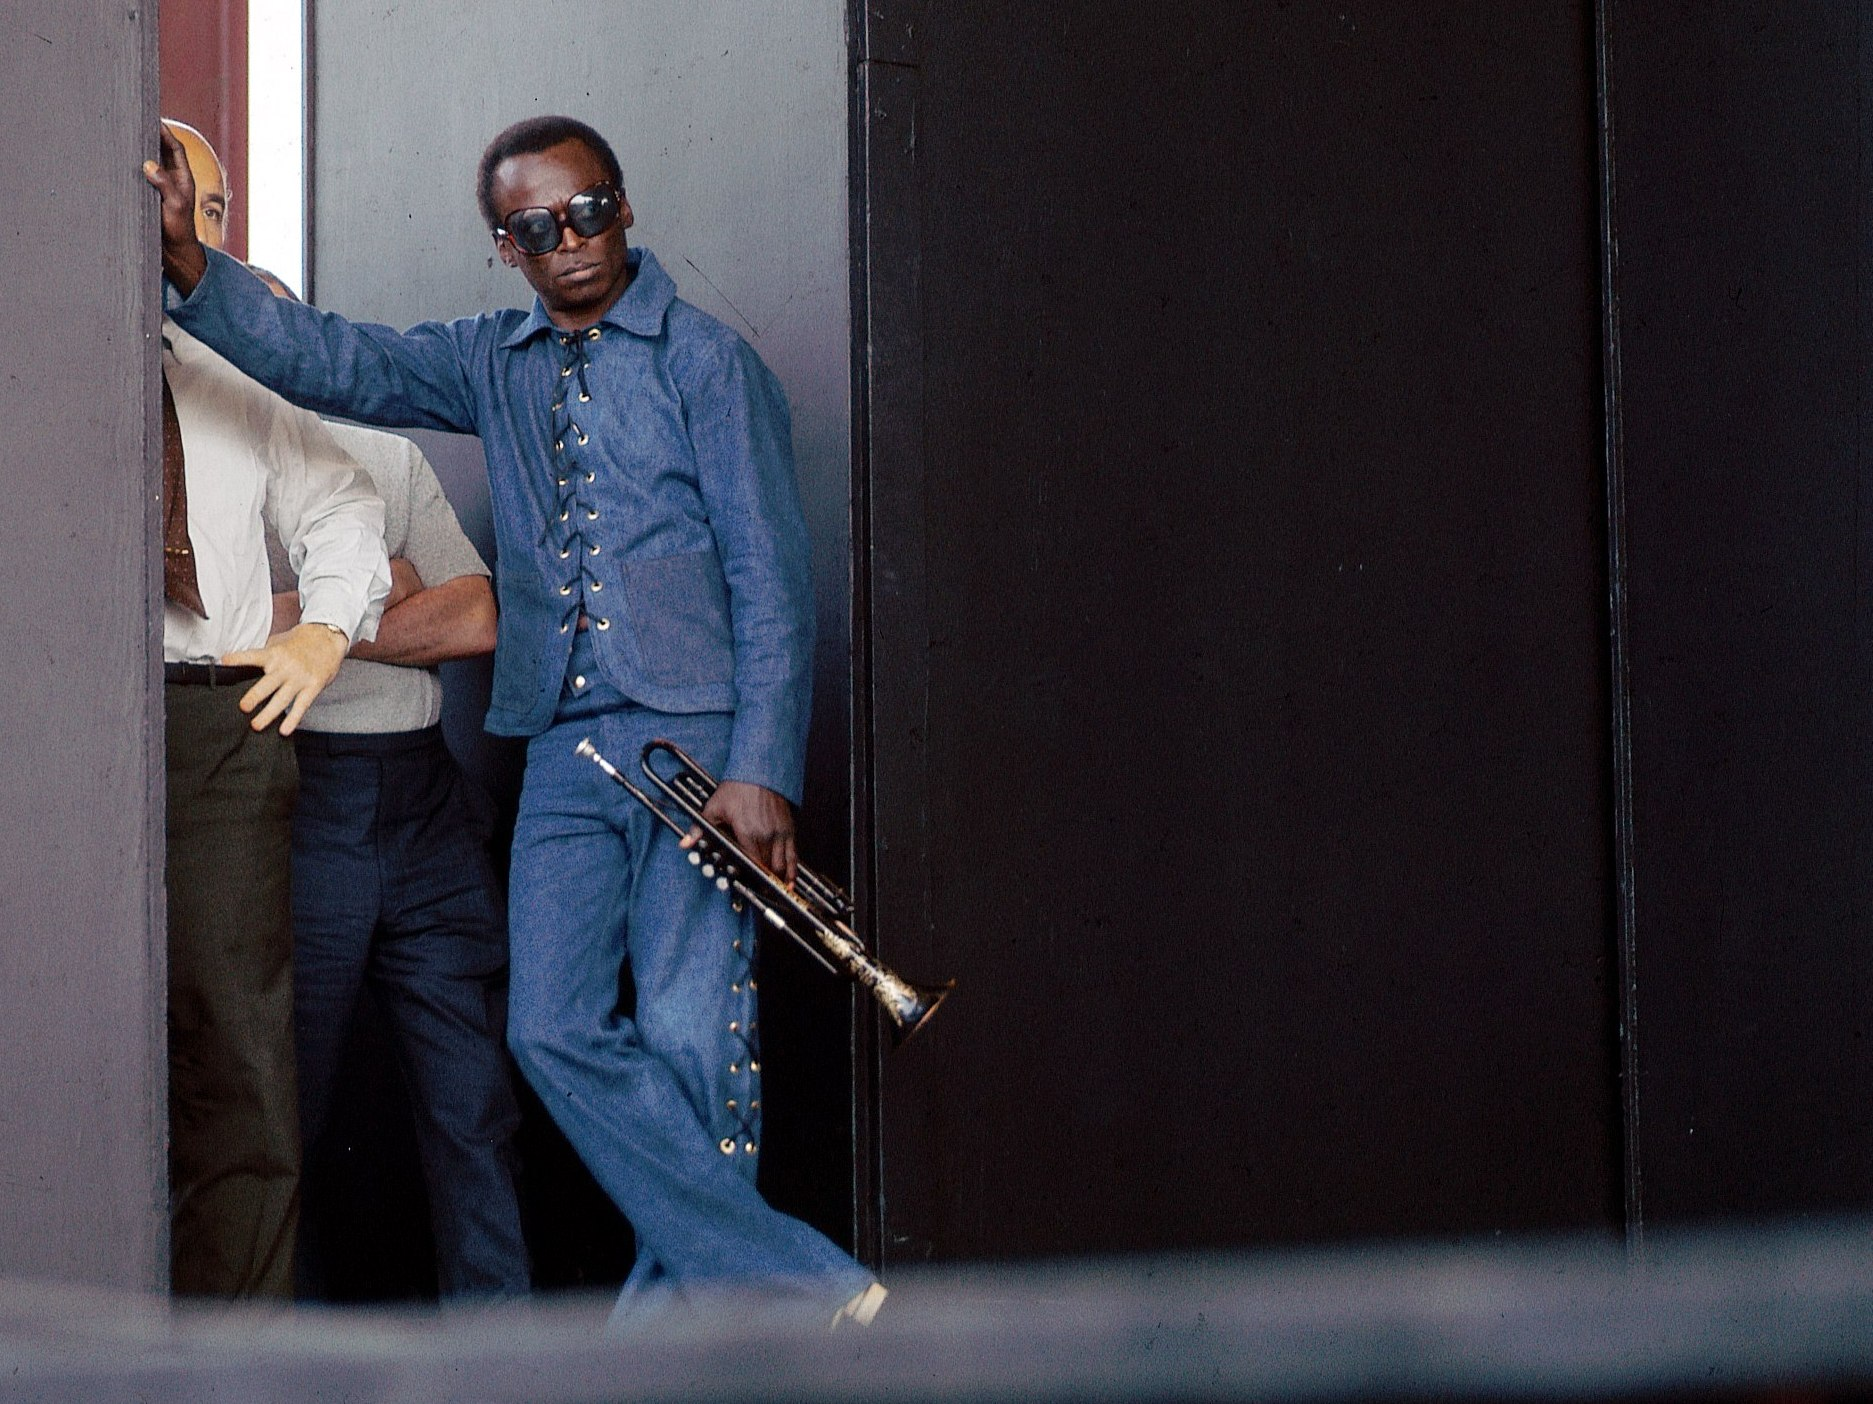 Miles Davis poses at the side of stage during the Newport Jazz Festival.